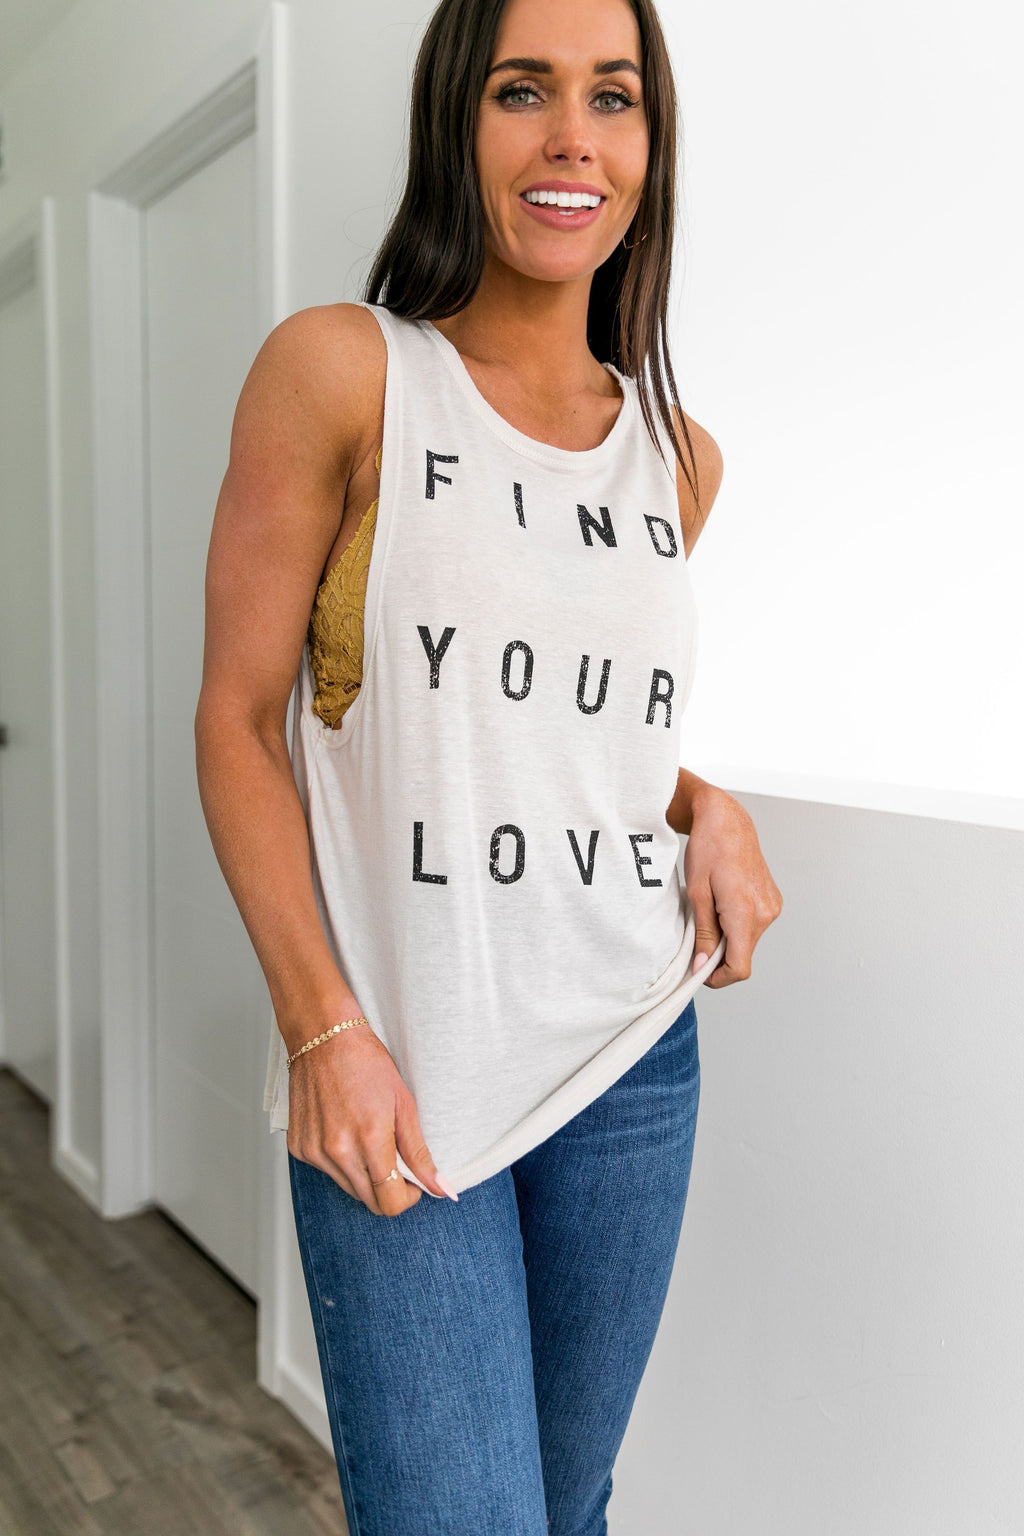 Find Your Love Graphic Tank